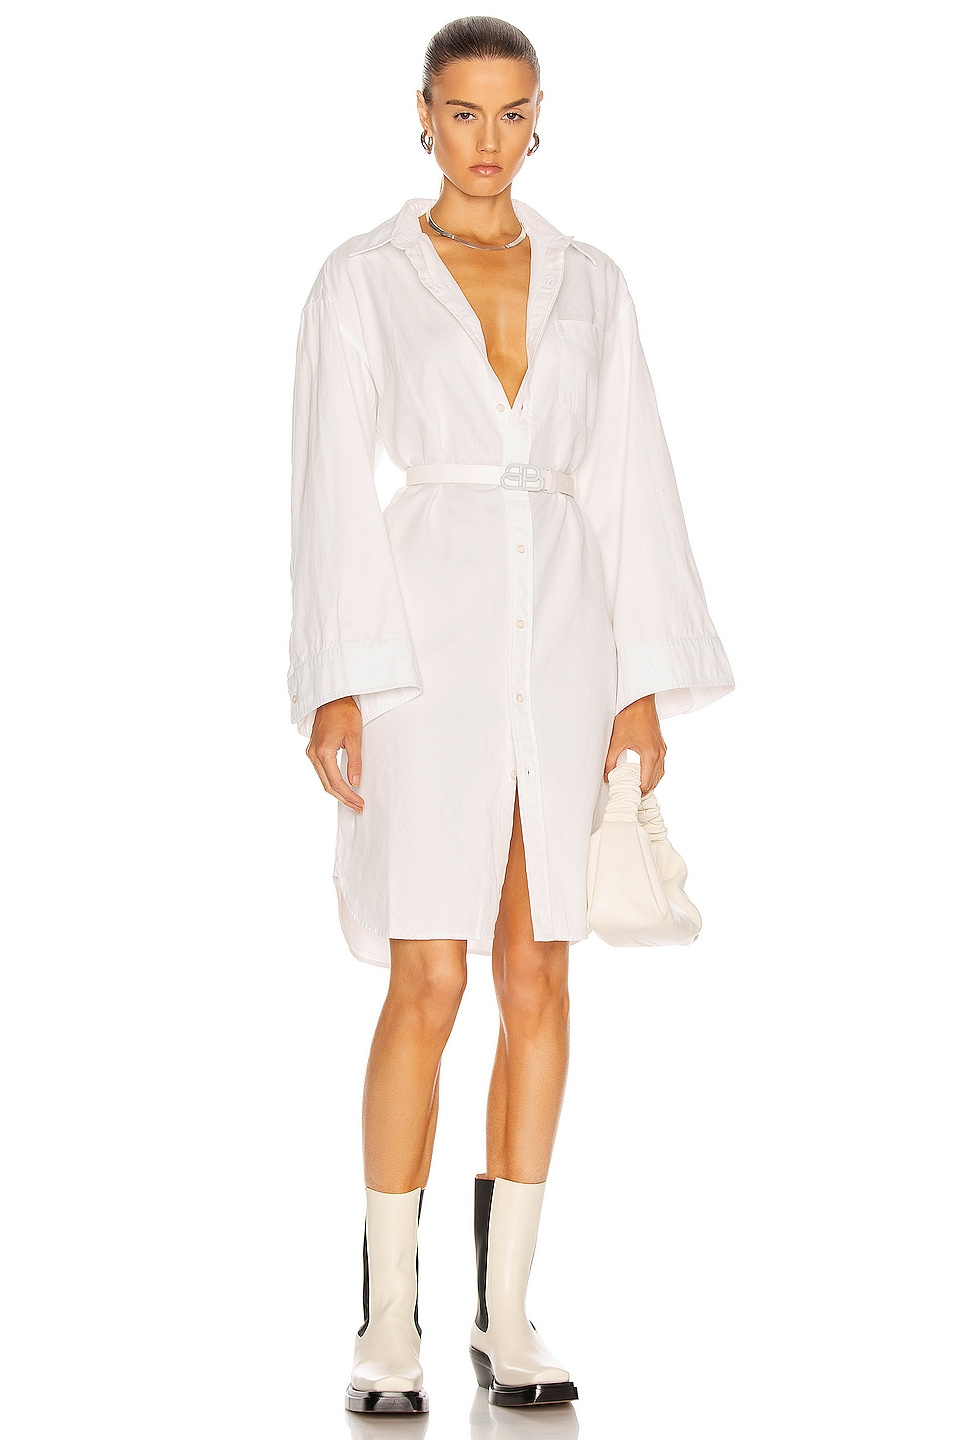 Image 1 of R13 Oversized Sleeve Button Up Shirt Dress in White